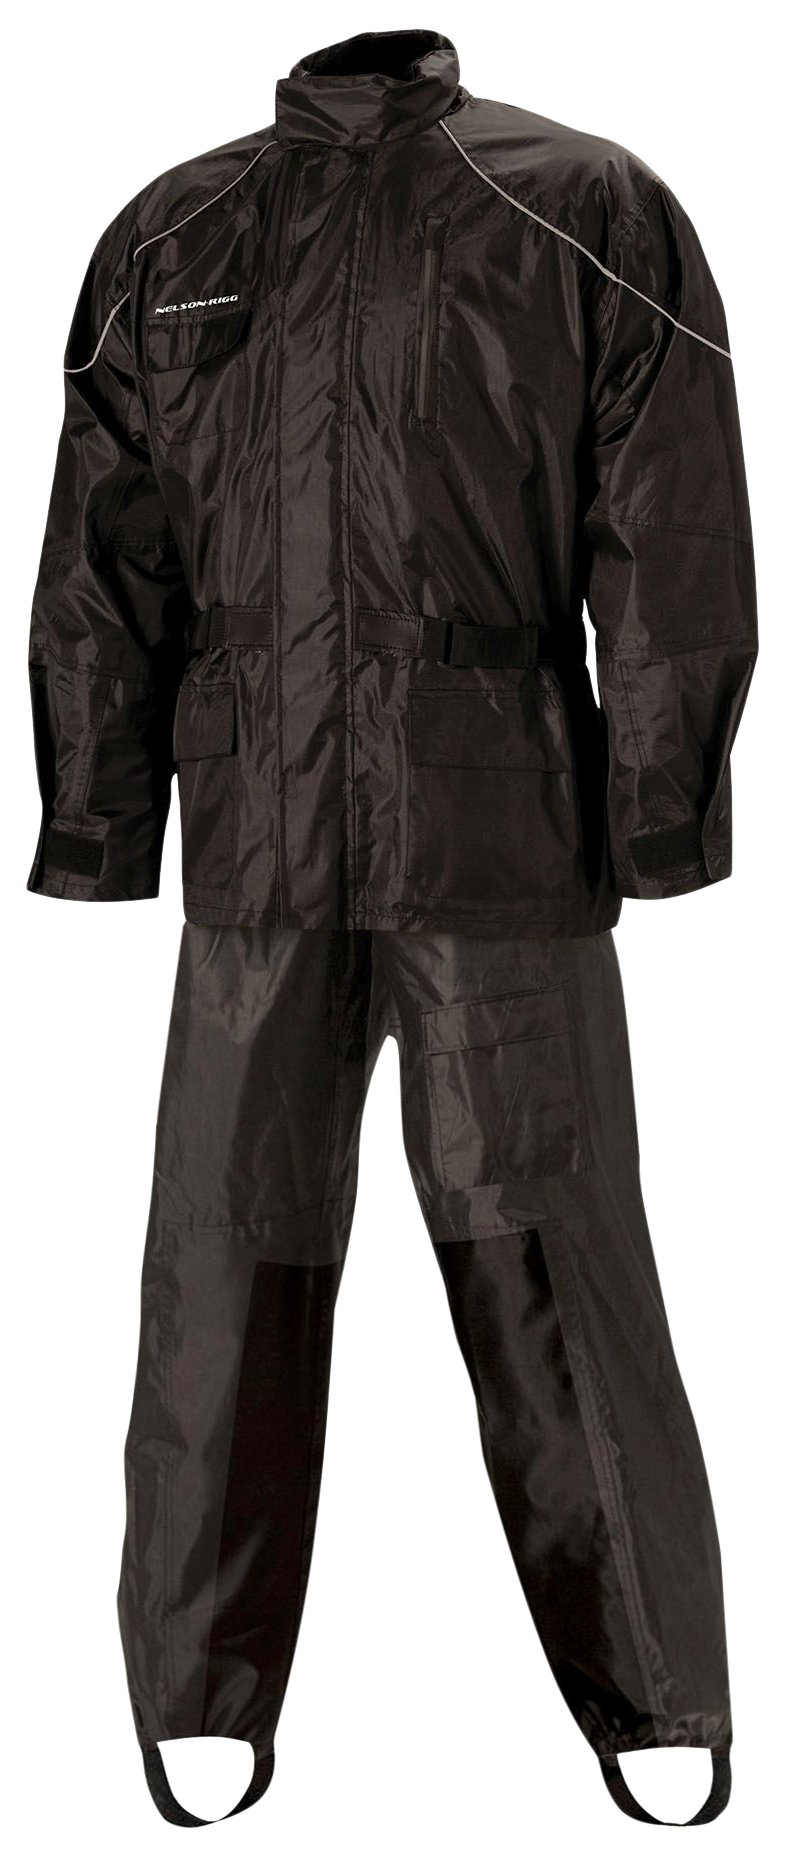 Nelson Rigg Unisex Adult AS-3000-BLK-01-SM Aston Motorcycle Rain Suit 2-Piece, (Black, Small)